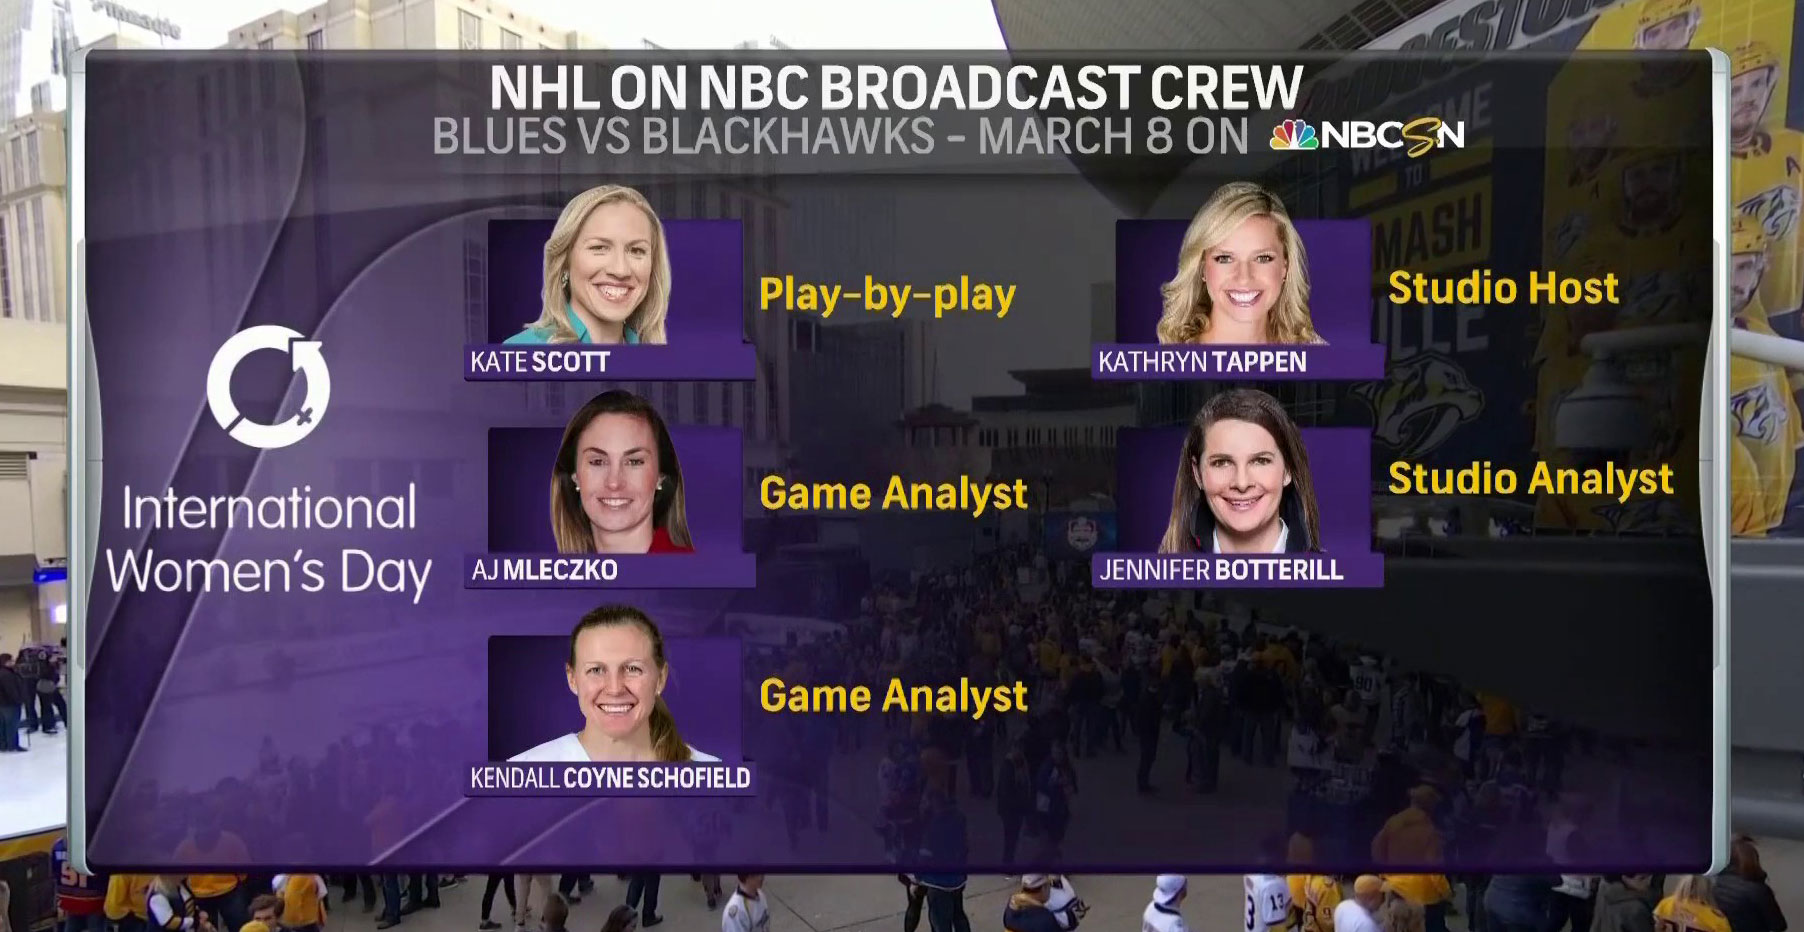 For The First Time Ever An All Female Crew Will Broadcast A Hockey Game To Celebrate International Women S Dayrmnb